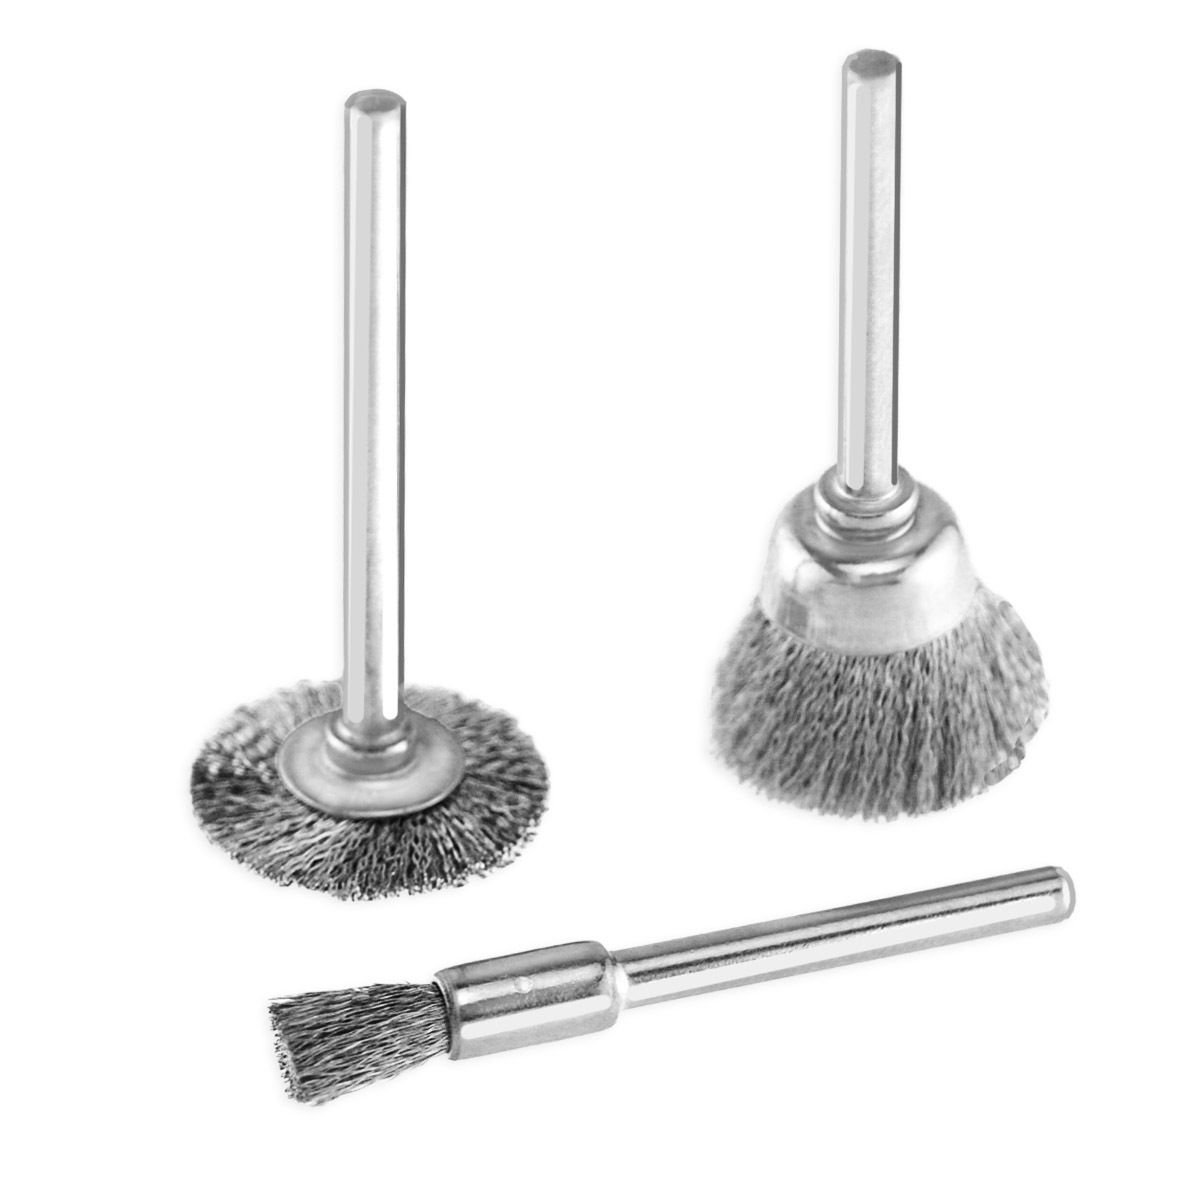 """Generic NV_1008002109_YC-US2 remelSte Brush Set - Wheel, Brus 3pc Rotary - Wh Cup, End 1/8"""" Cup, Tool Steel Wire /8"""" S Shank fits Dremel 3pc Rot"""